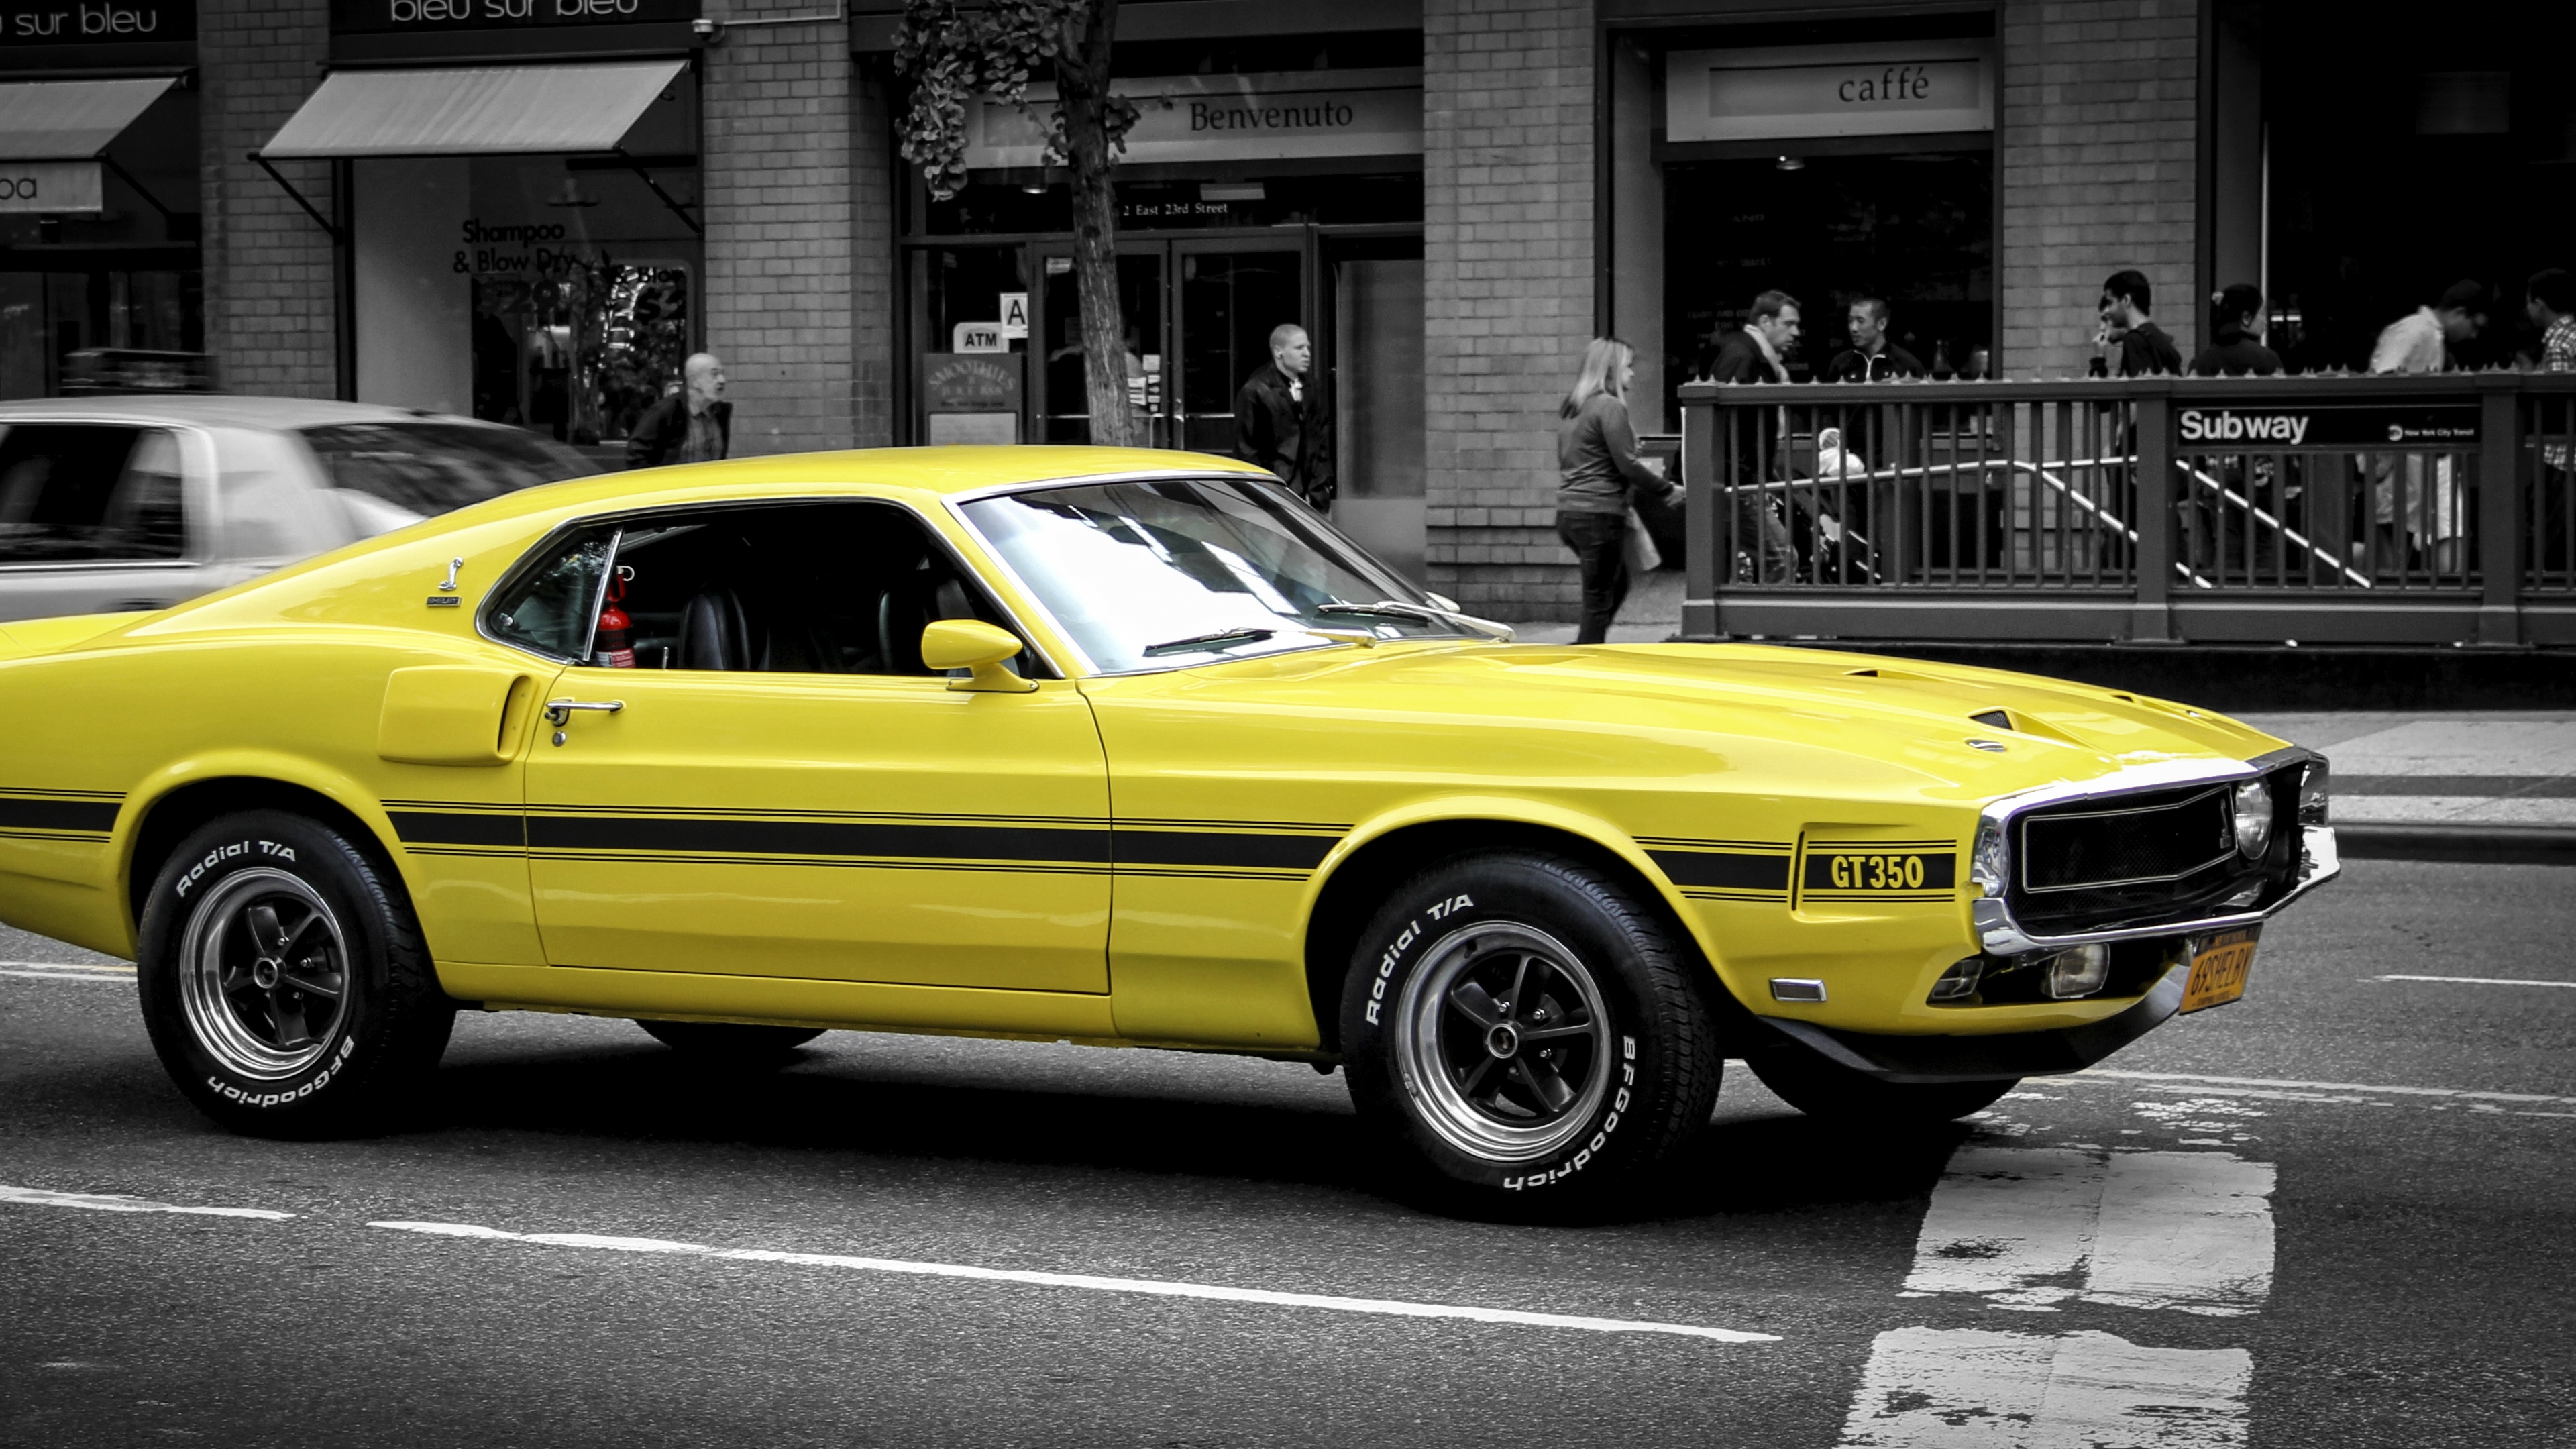 Classic Cars Hd Wallpapers 4k: 4K Car Wallpapers